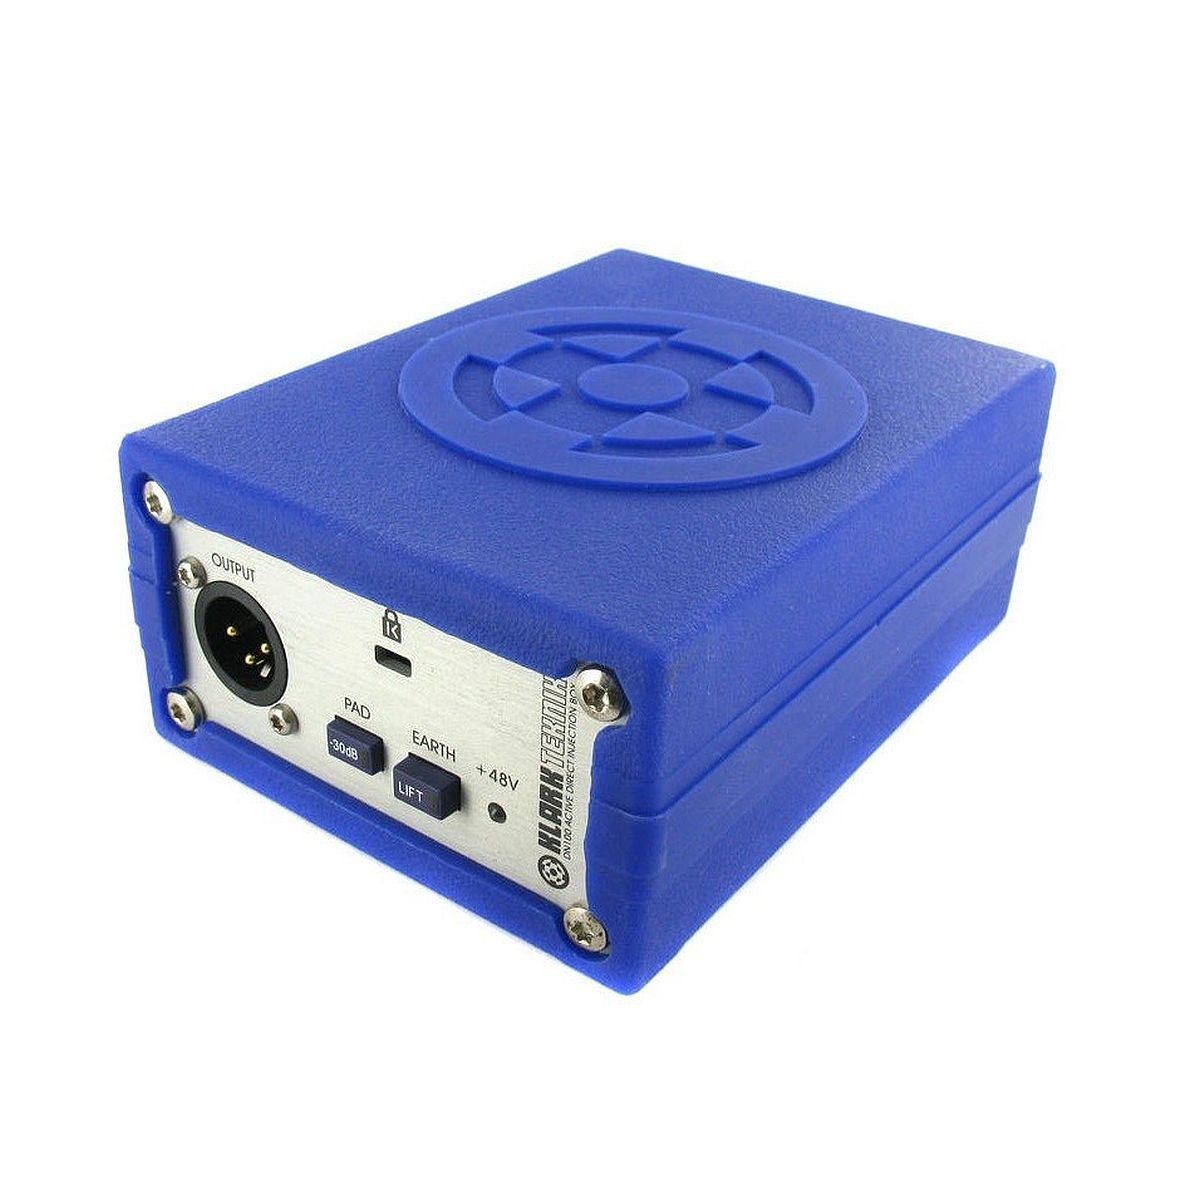 Klark Teknik DN100 | High-Performance Phantom Powered Single-Channel Active DI Box with Switchable -30 dB Input Pad and Earth Lift Switch (1-Unit)